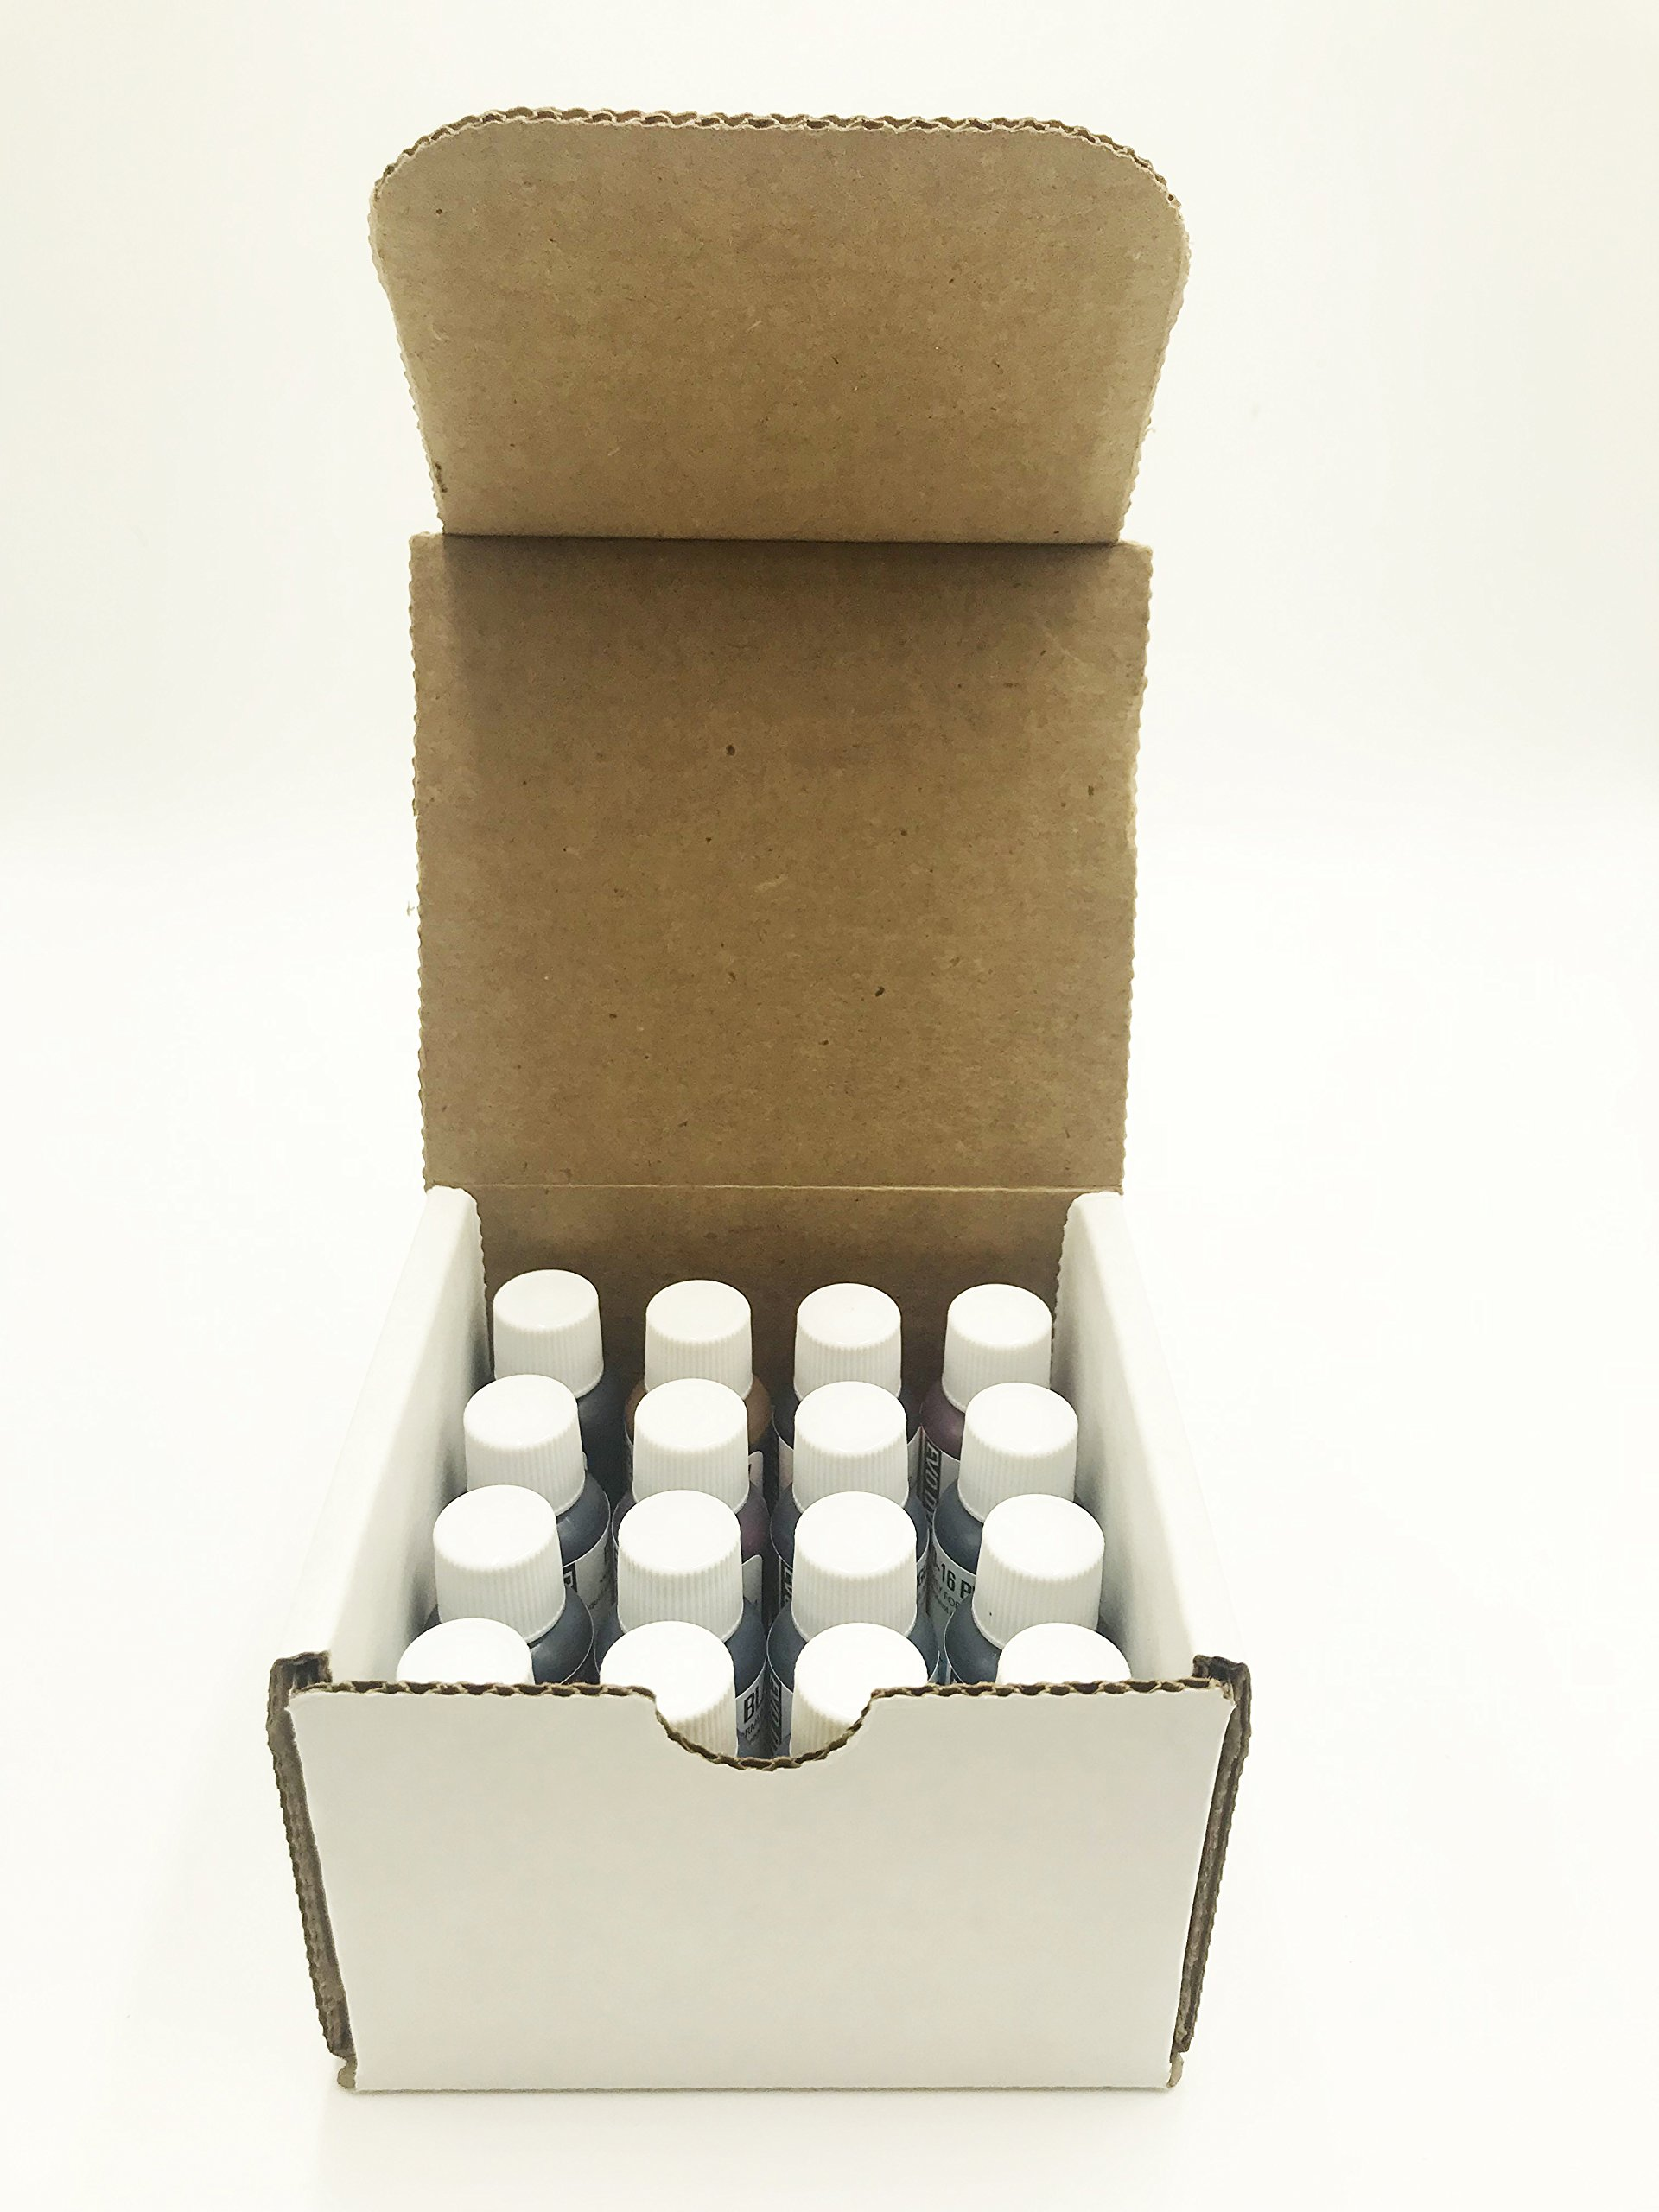 CANDLEWIC'S 16PK Highly Concentrated Liquid Candle Dyes by Candlewic